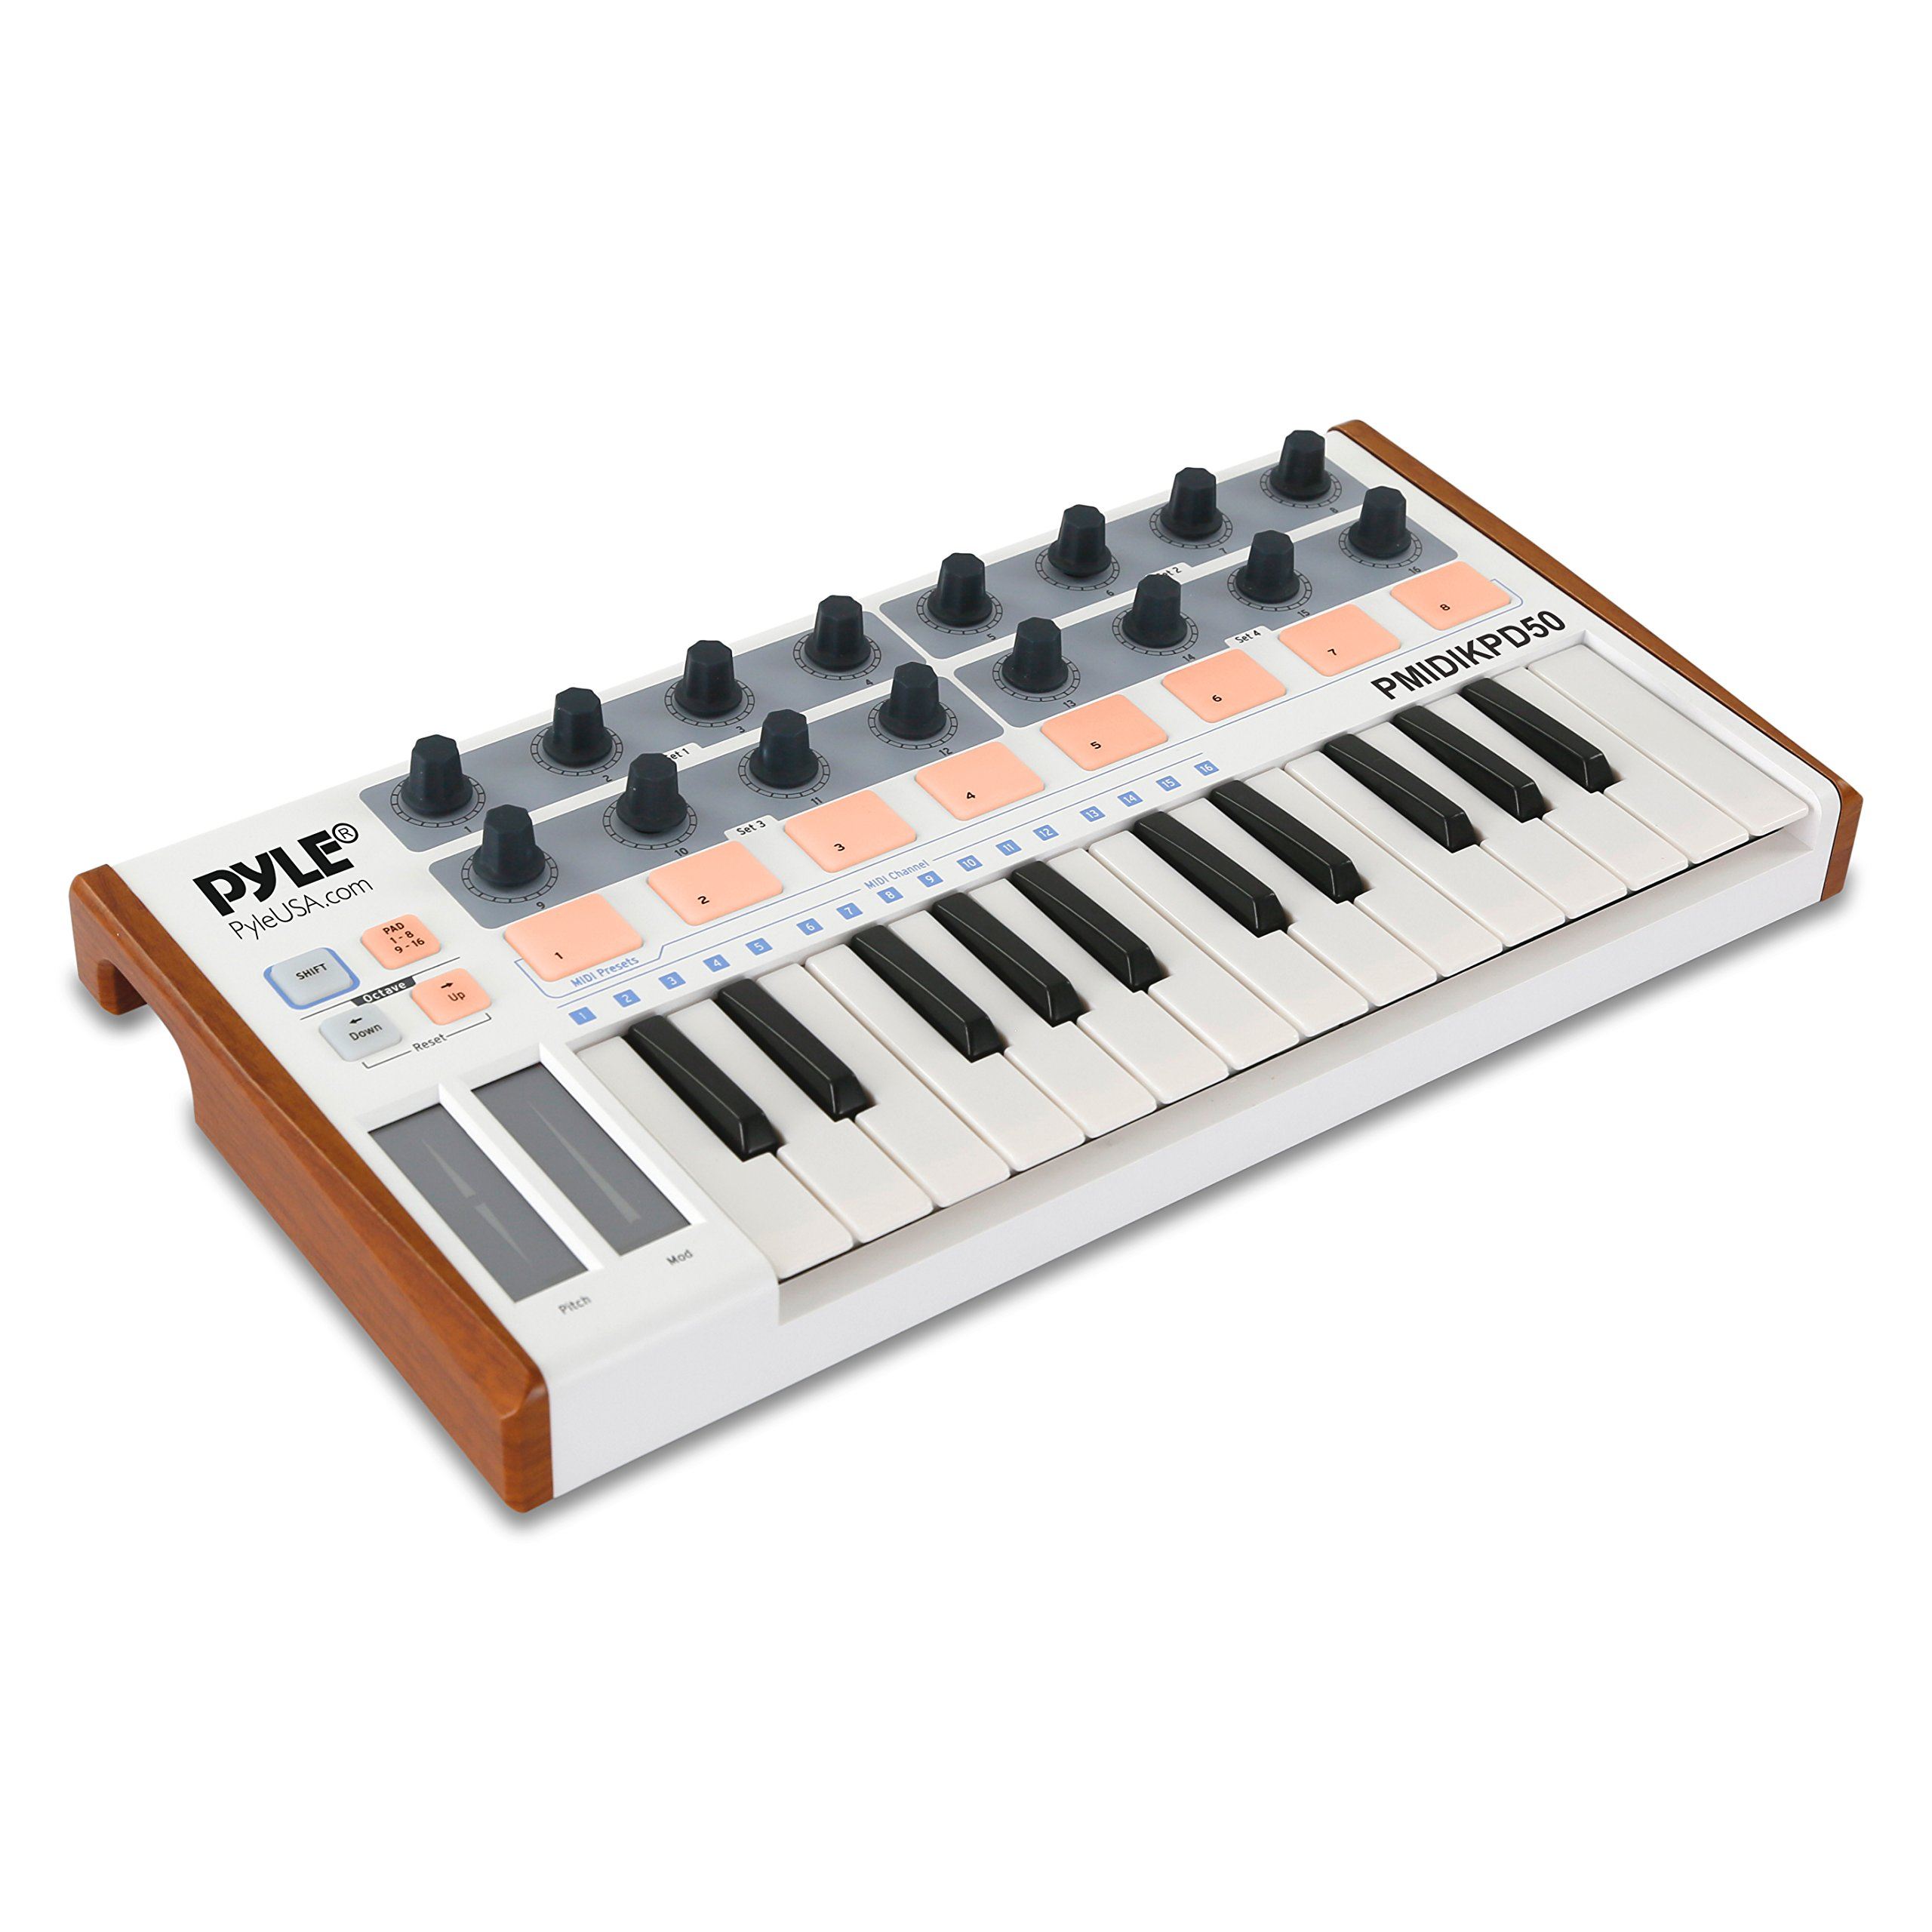 Pyle USB MIDI Keyboard Controller - Portable Recording Equipment Kit w/ 25 Synth Piano Keys, 8 Drum Beat Pads, 16 DJ Fader Knobs - Mini Hardware Buttons Control any Electronic Music DAW - PMIDIKPD50